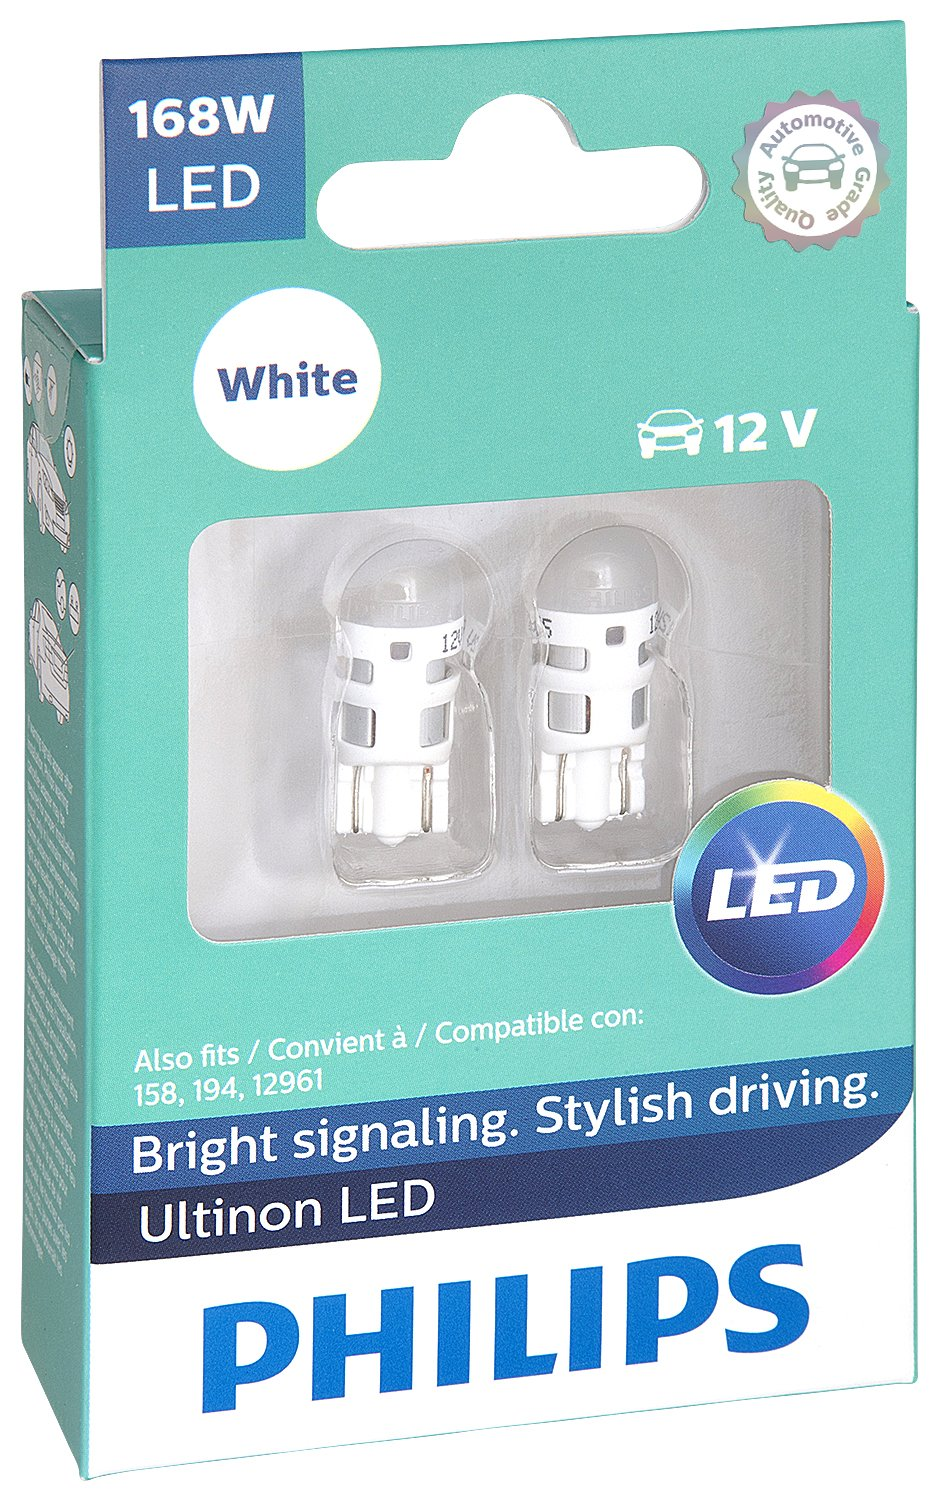 Philips 168 Ultinon LED Bulb (White), 2 Pack